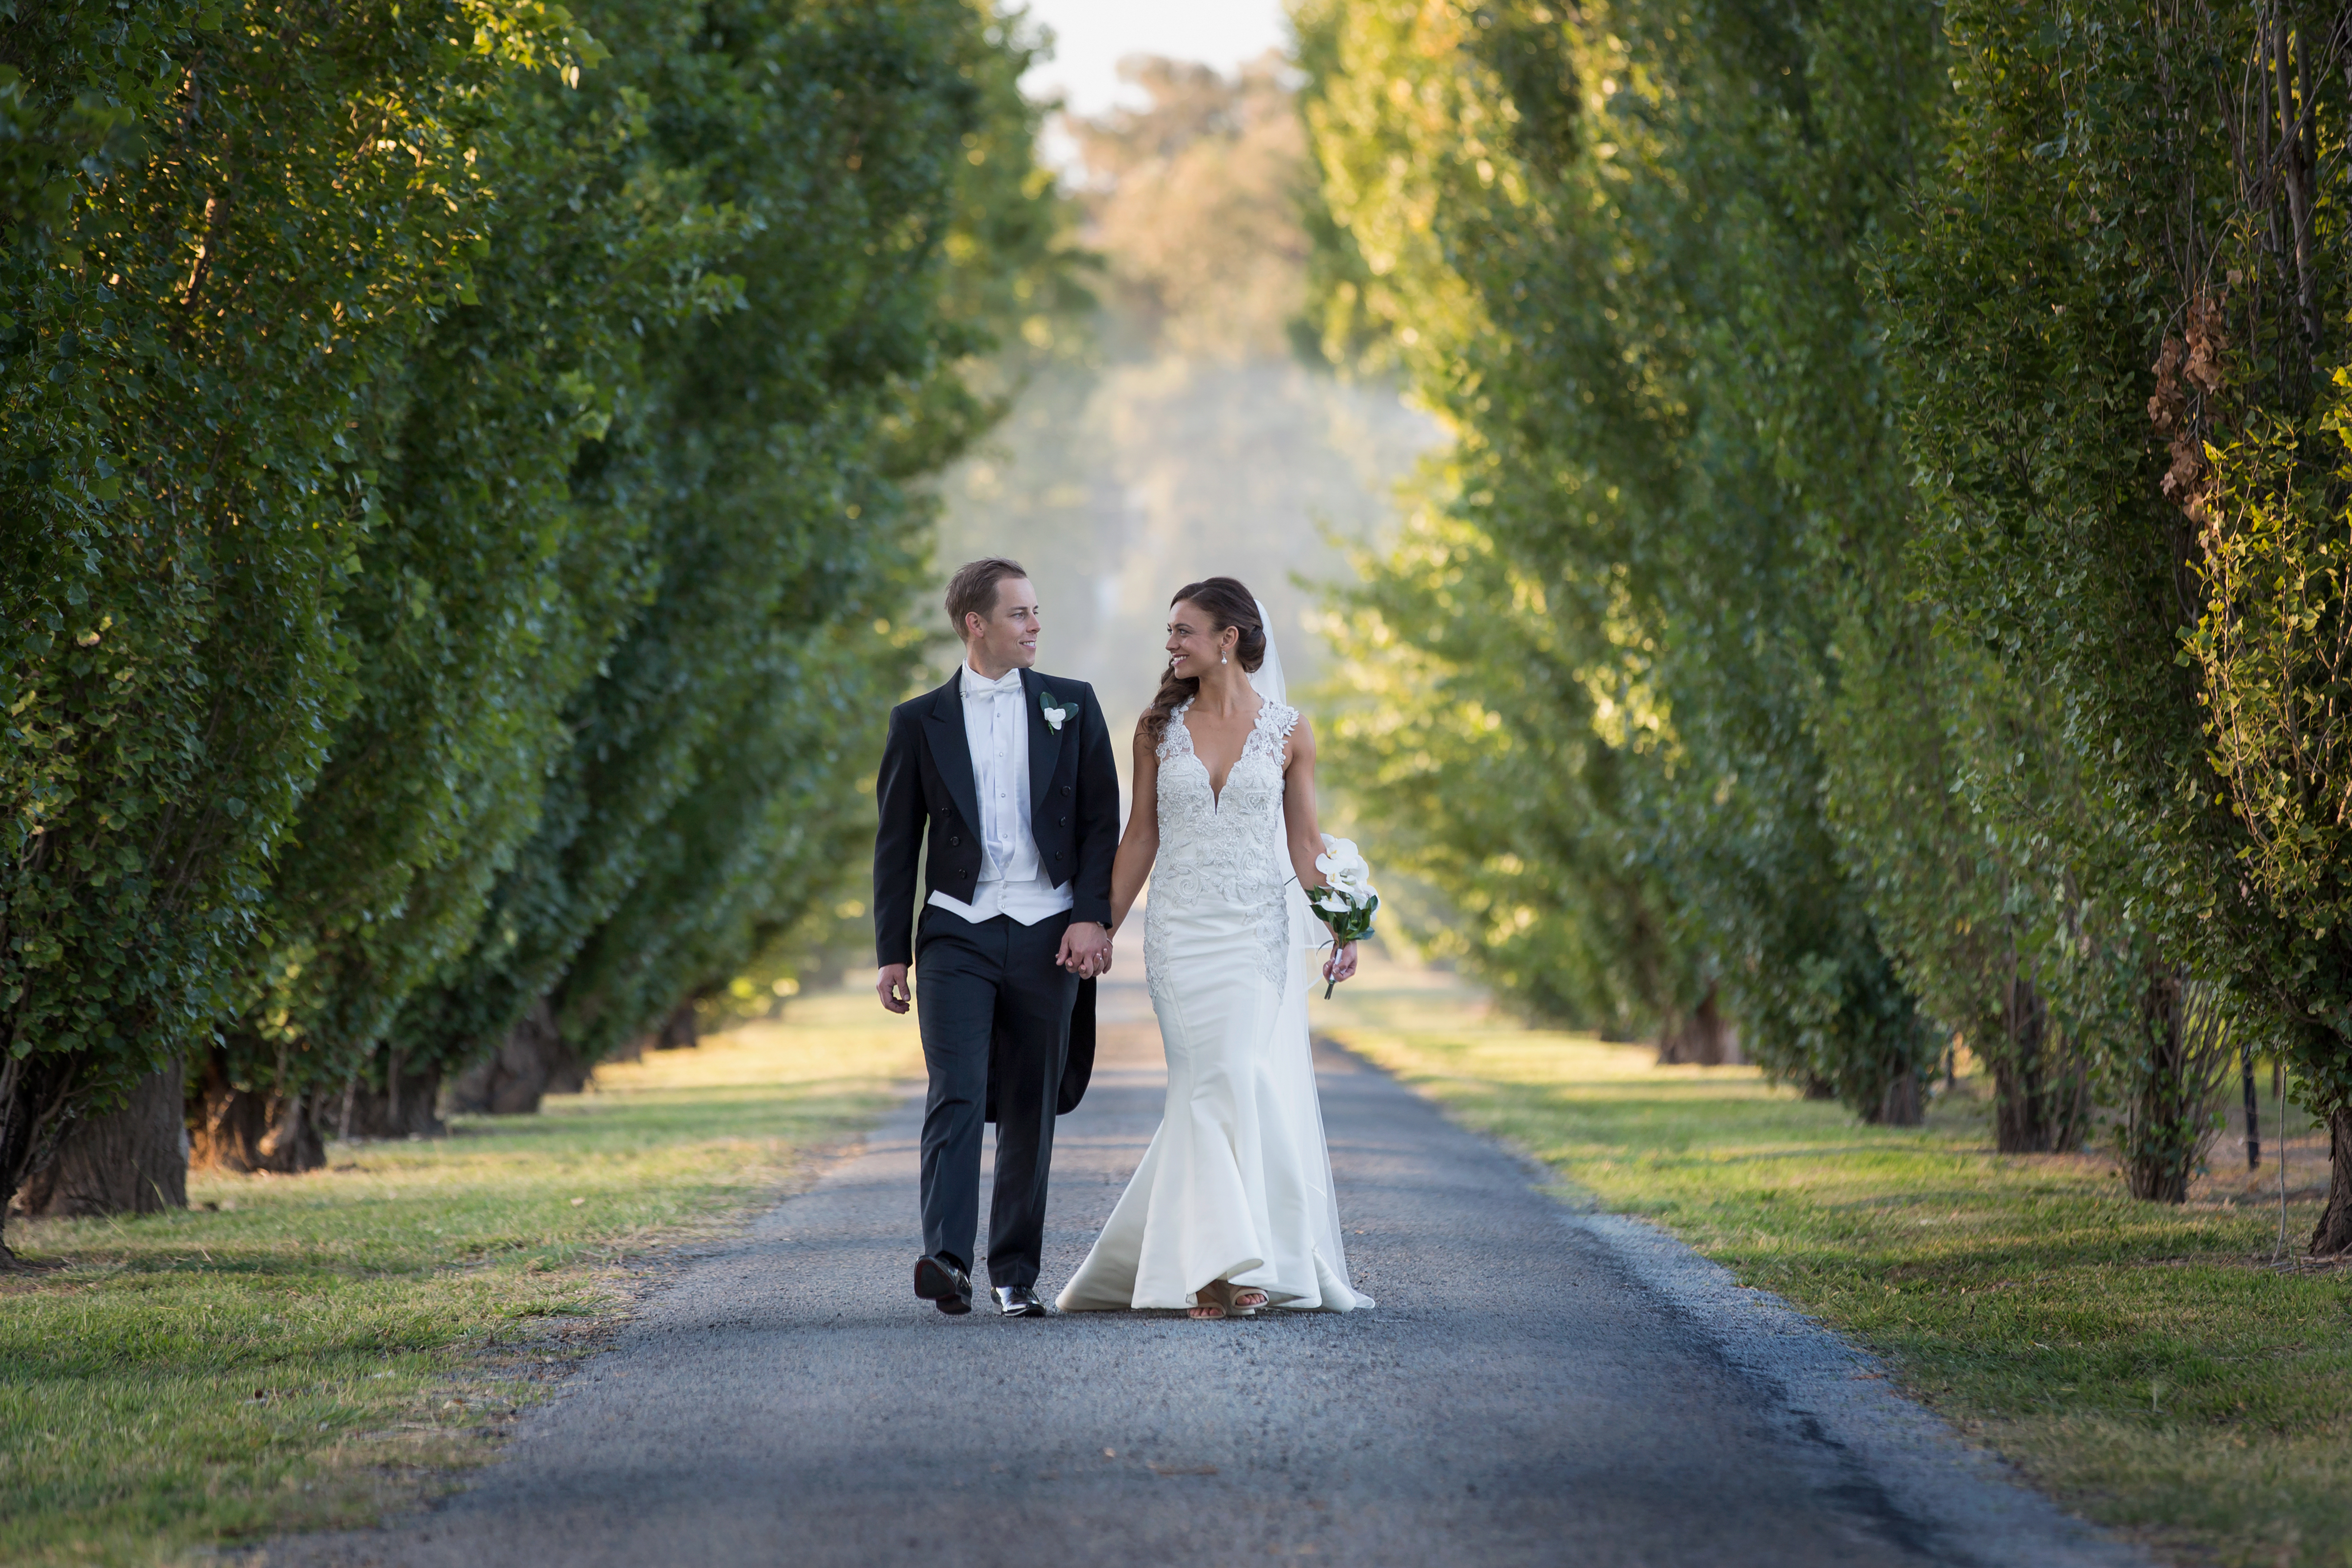 Bride and Groom in coat and tails walking down formal driveway